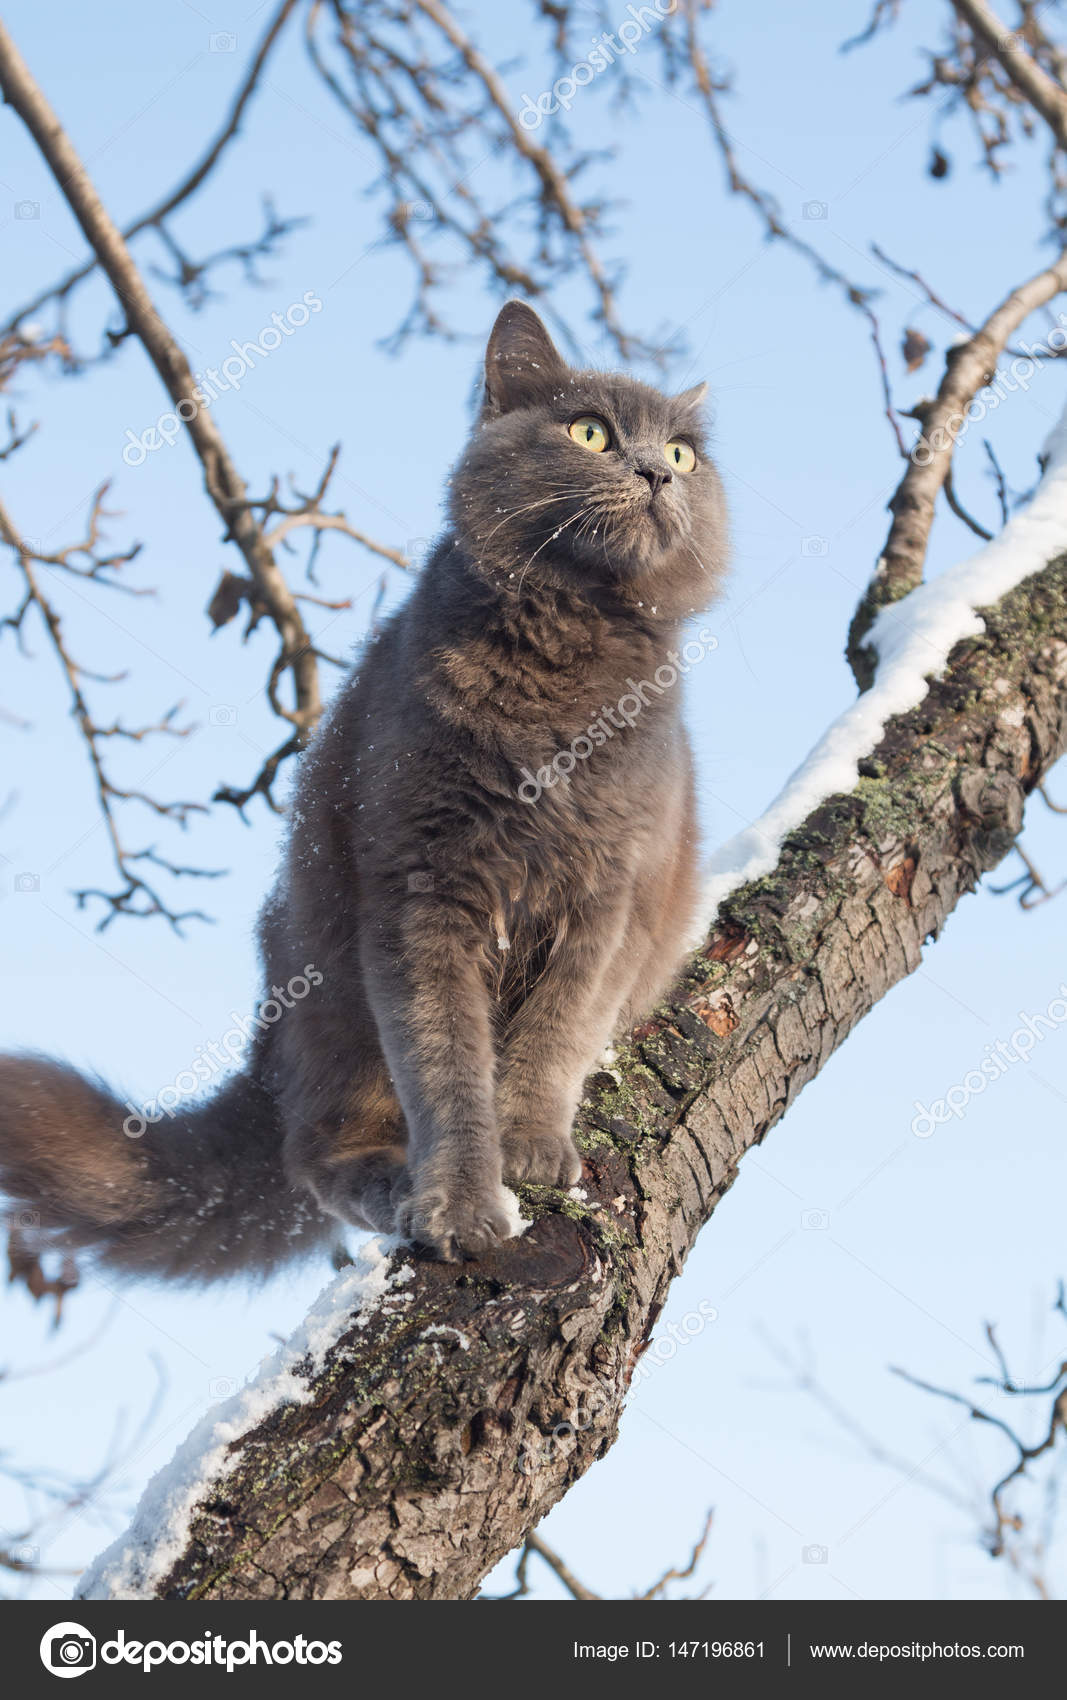 Portrait Of Fluffy Gray Cat On A Tree With Snow Stock Photo C Alexey M 147196861